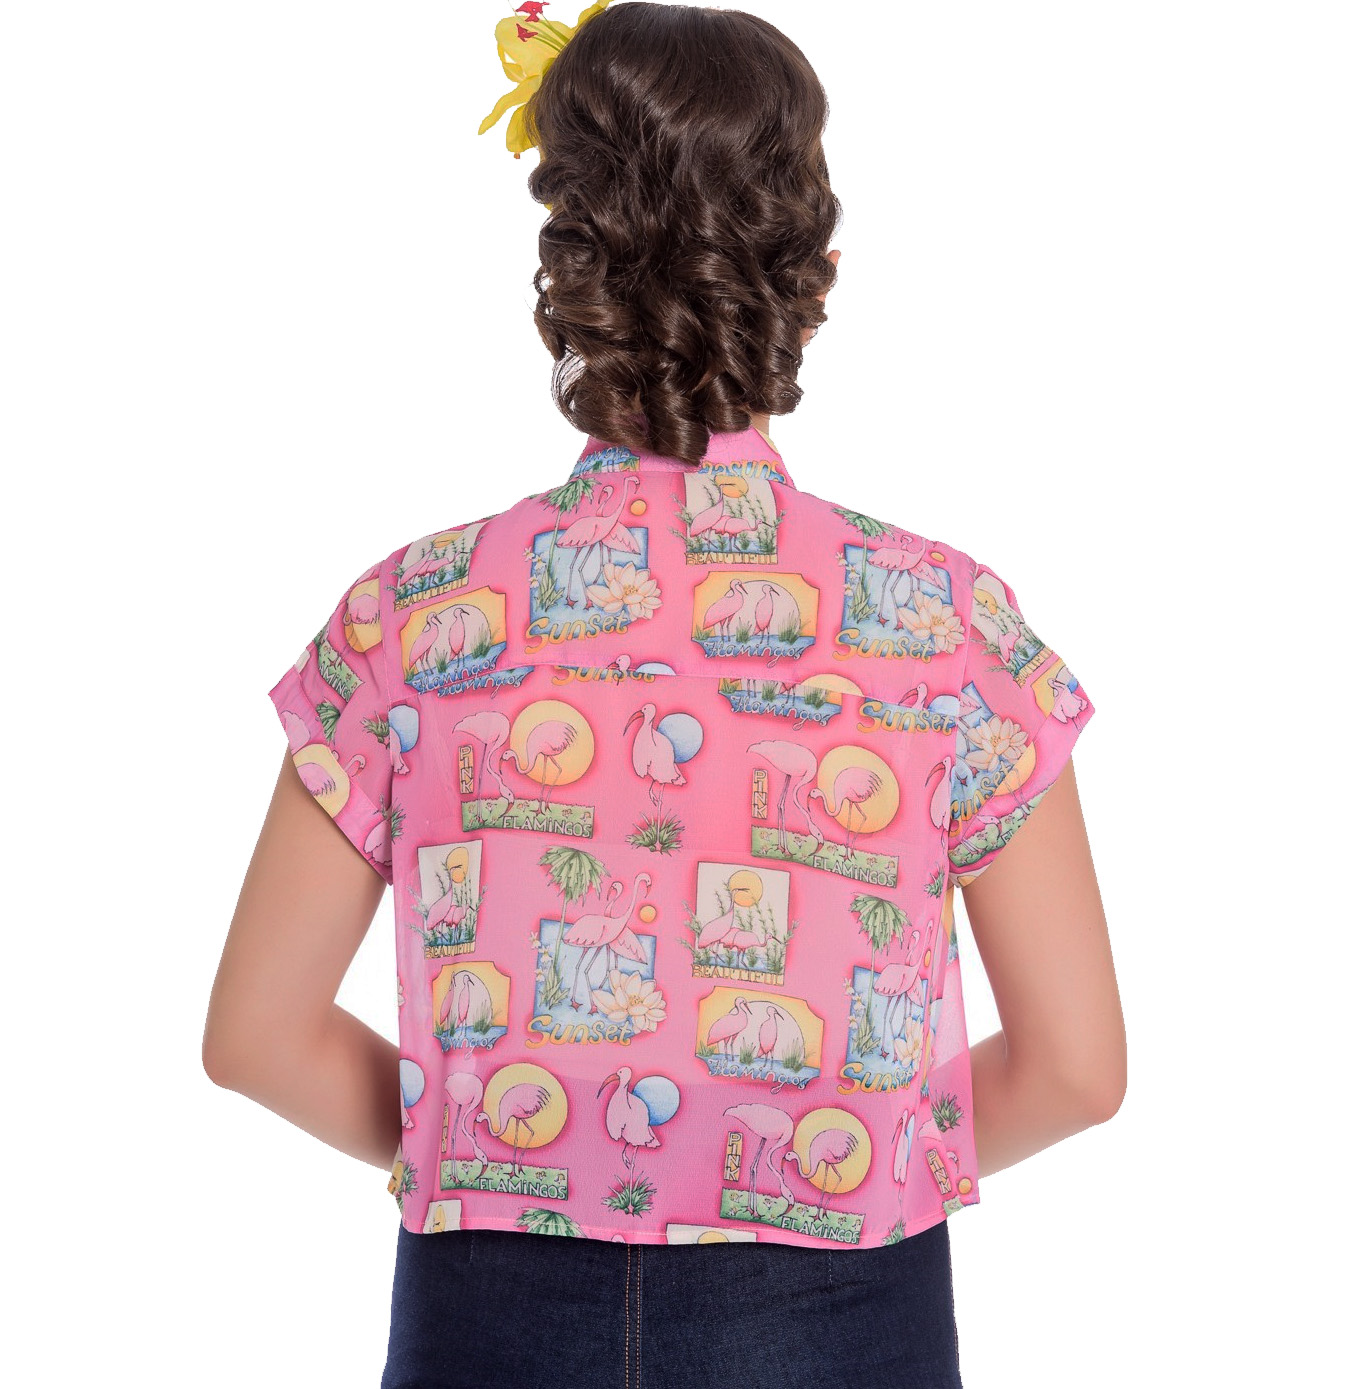 Hell-Bunny-50s-Retro-Top-Pink-Flamingo-MAXINE-Cropped-Blouse-Shirt-All-Sizes thumbnail 5